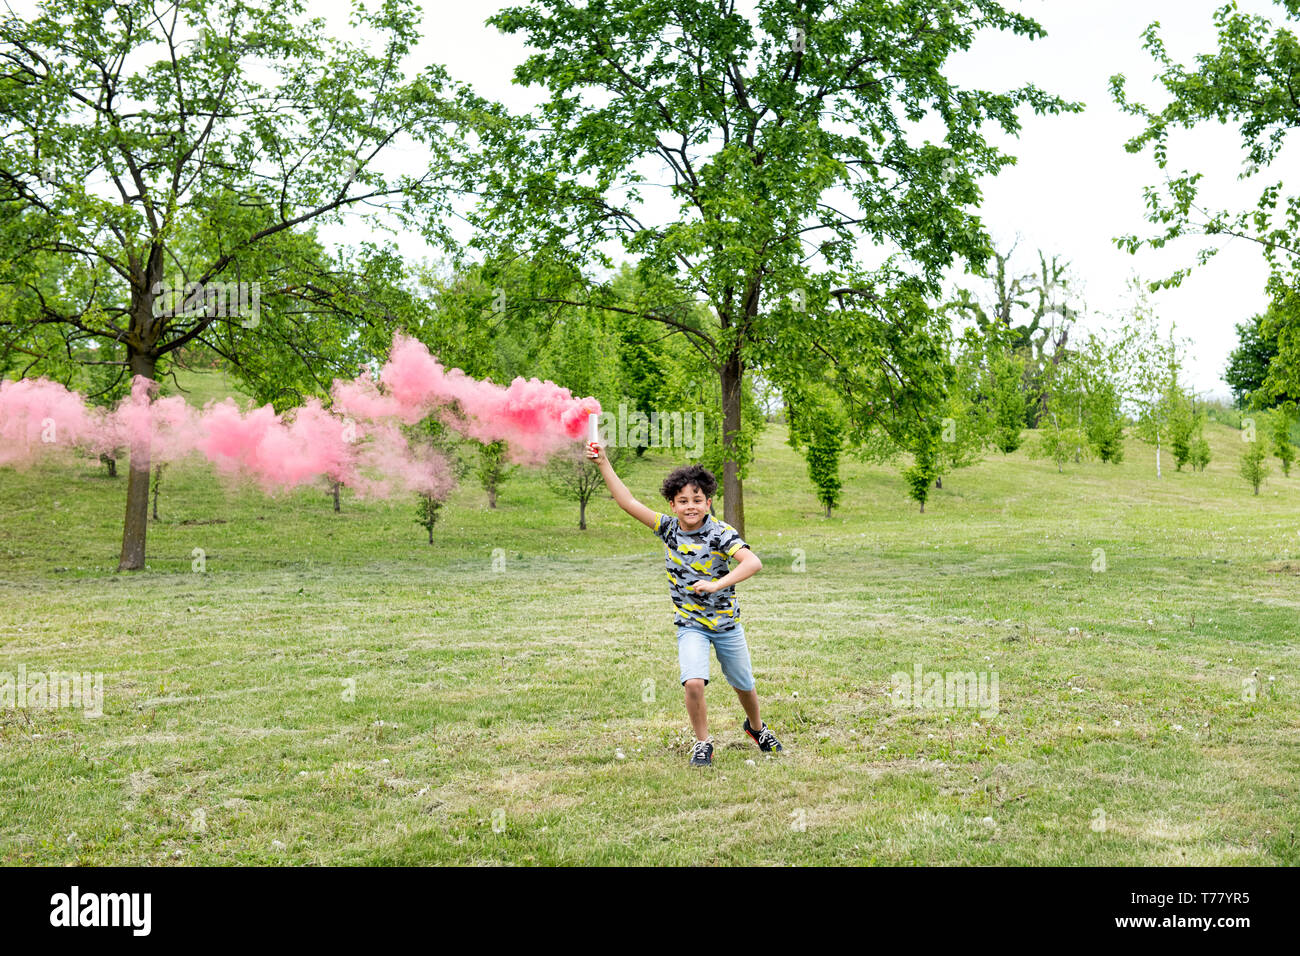 Young boy running through a park in early spring trailing a pink smoke flare behind him - Stock Image